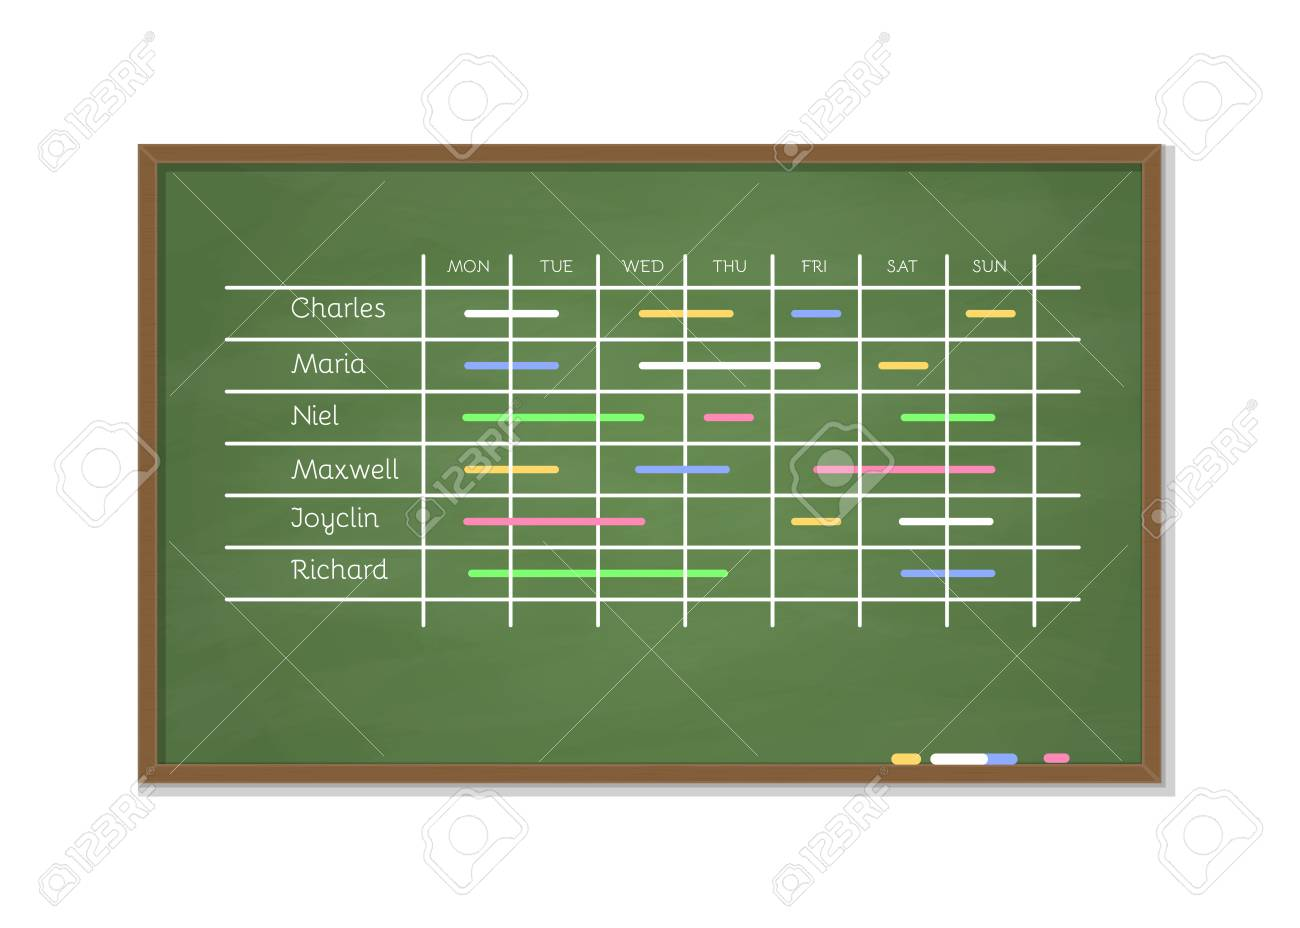 green chalkboard schedule for week planning business planner